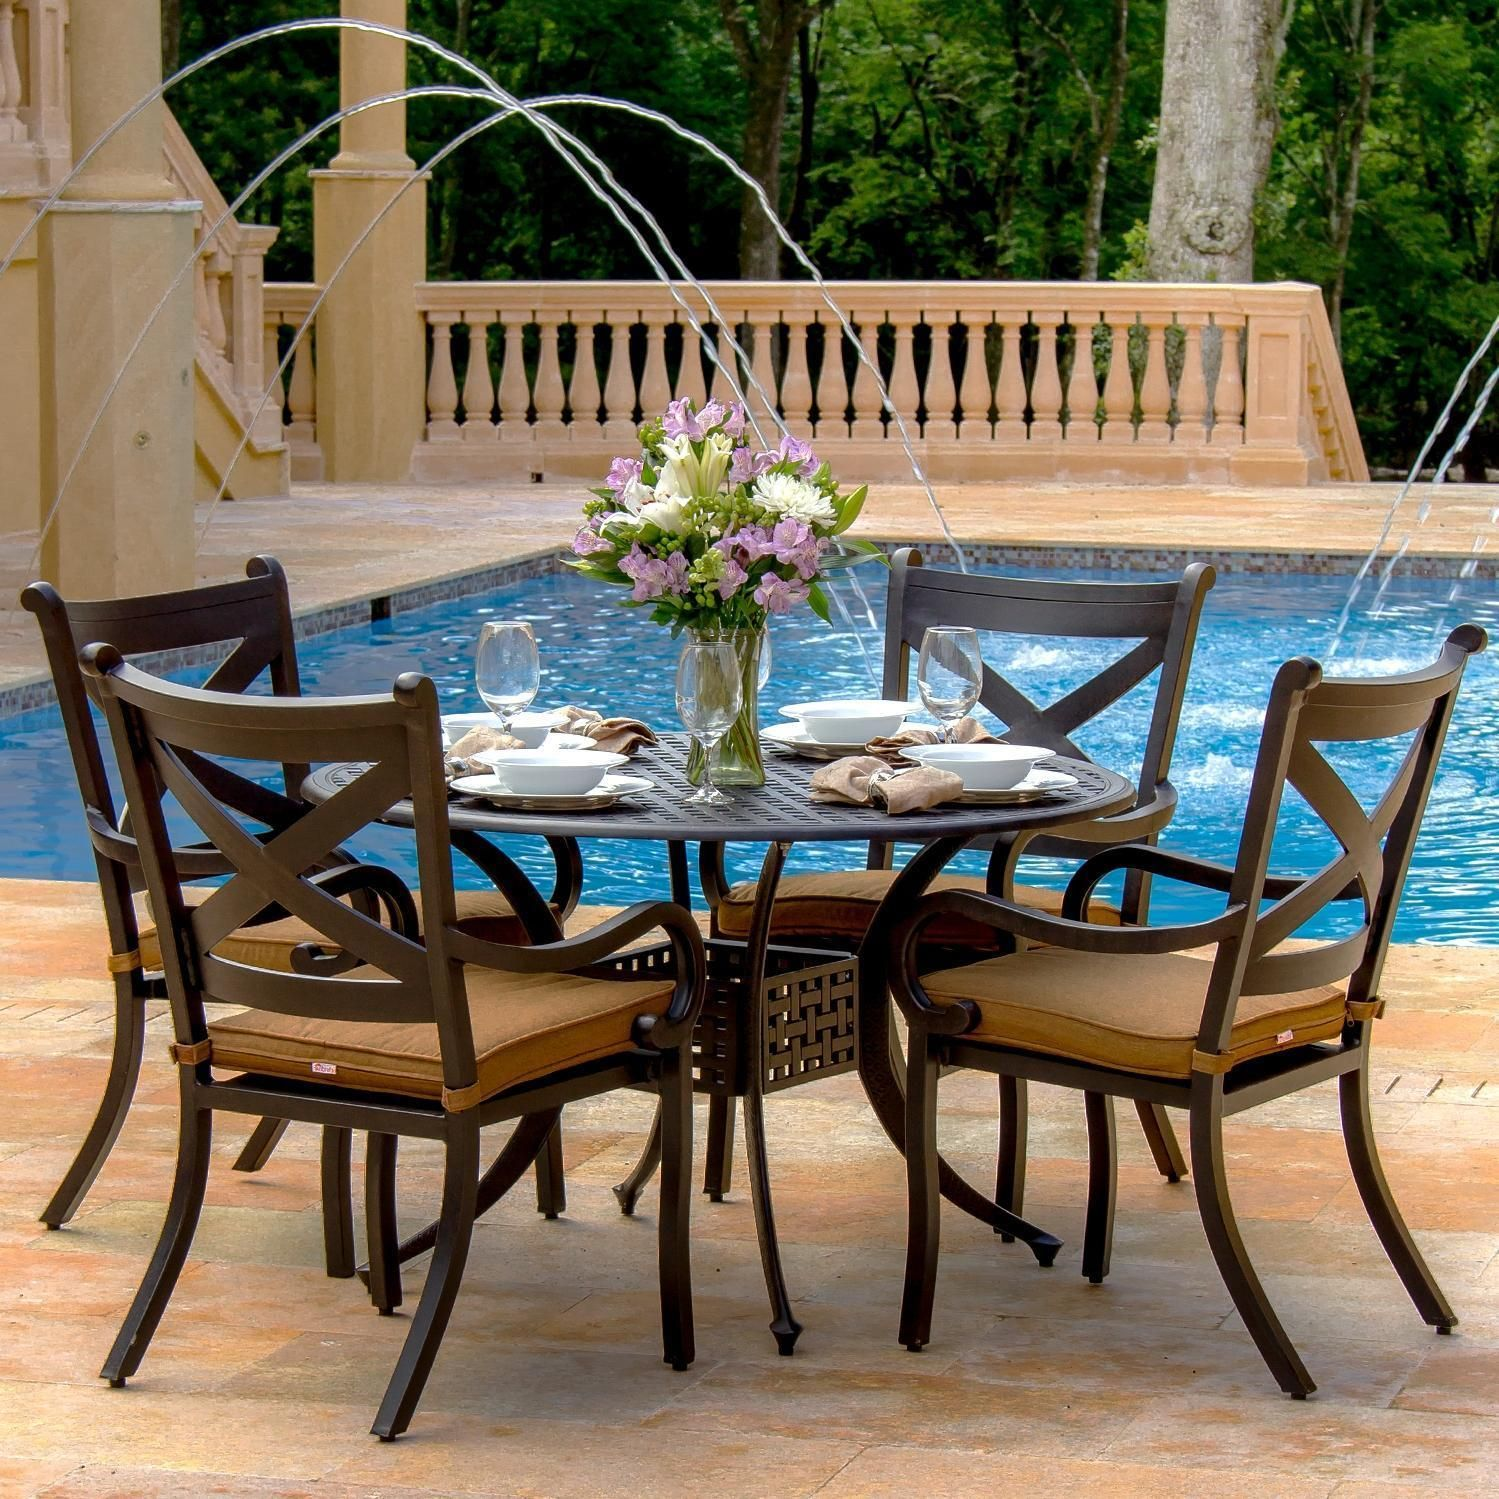 Lakeview Dining Room Inspiration Lakeview Outdoor Designs Avondale 4Person Cast Aluminum Patio Design Inspiration